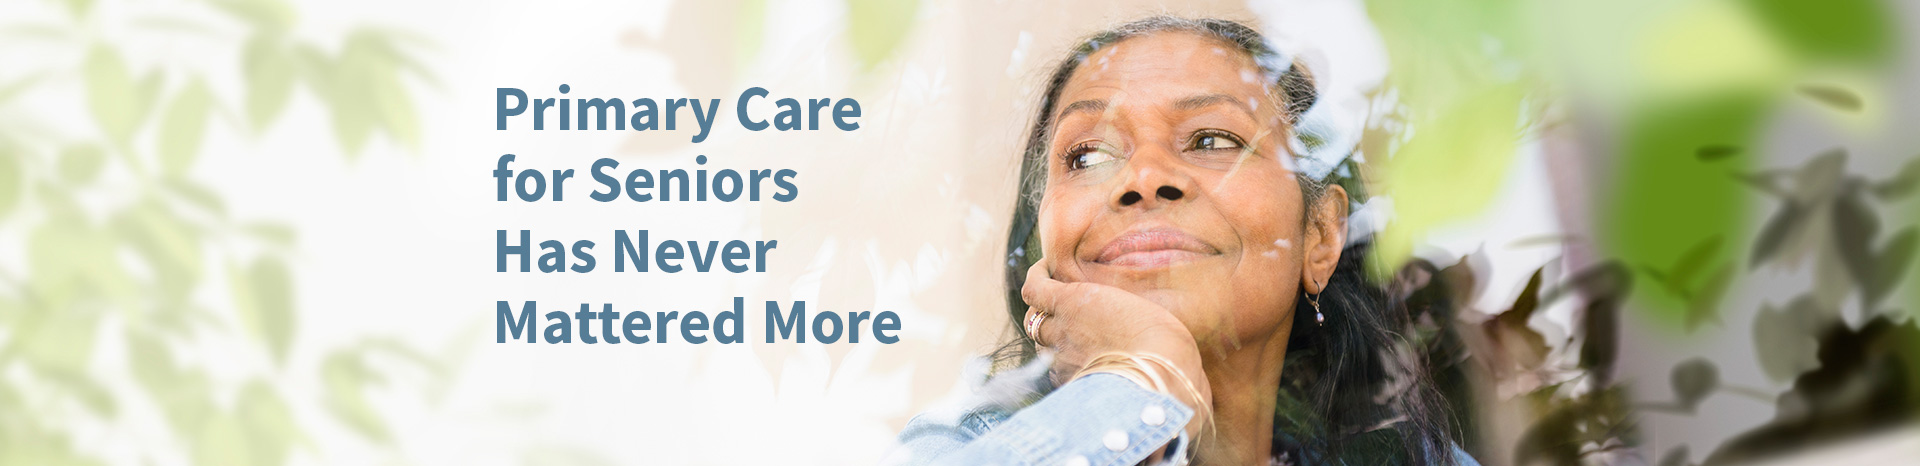 Primary Care for Seniors Has Never Mattered More